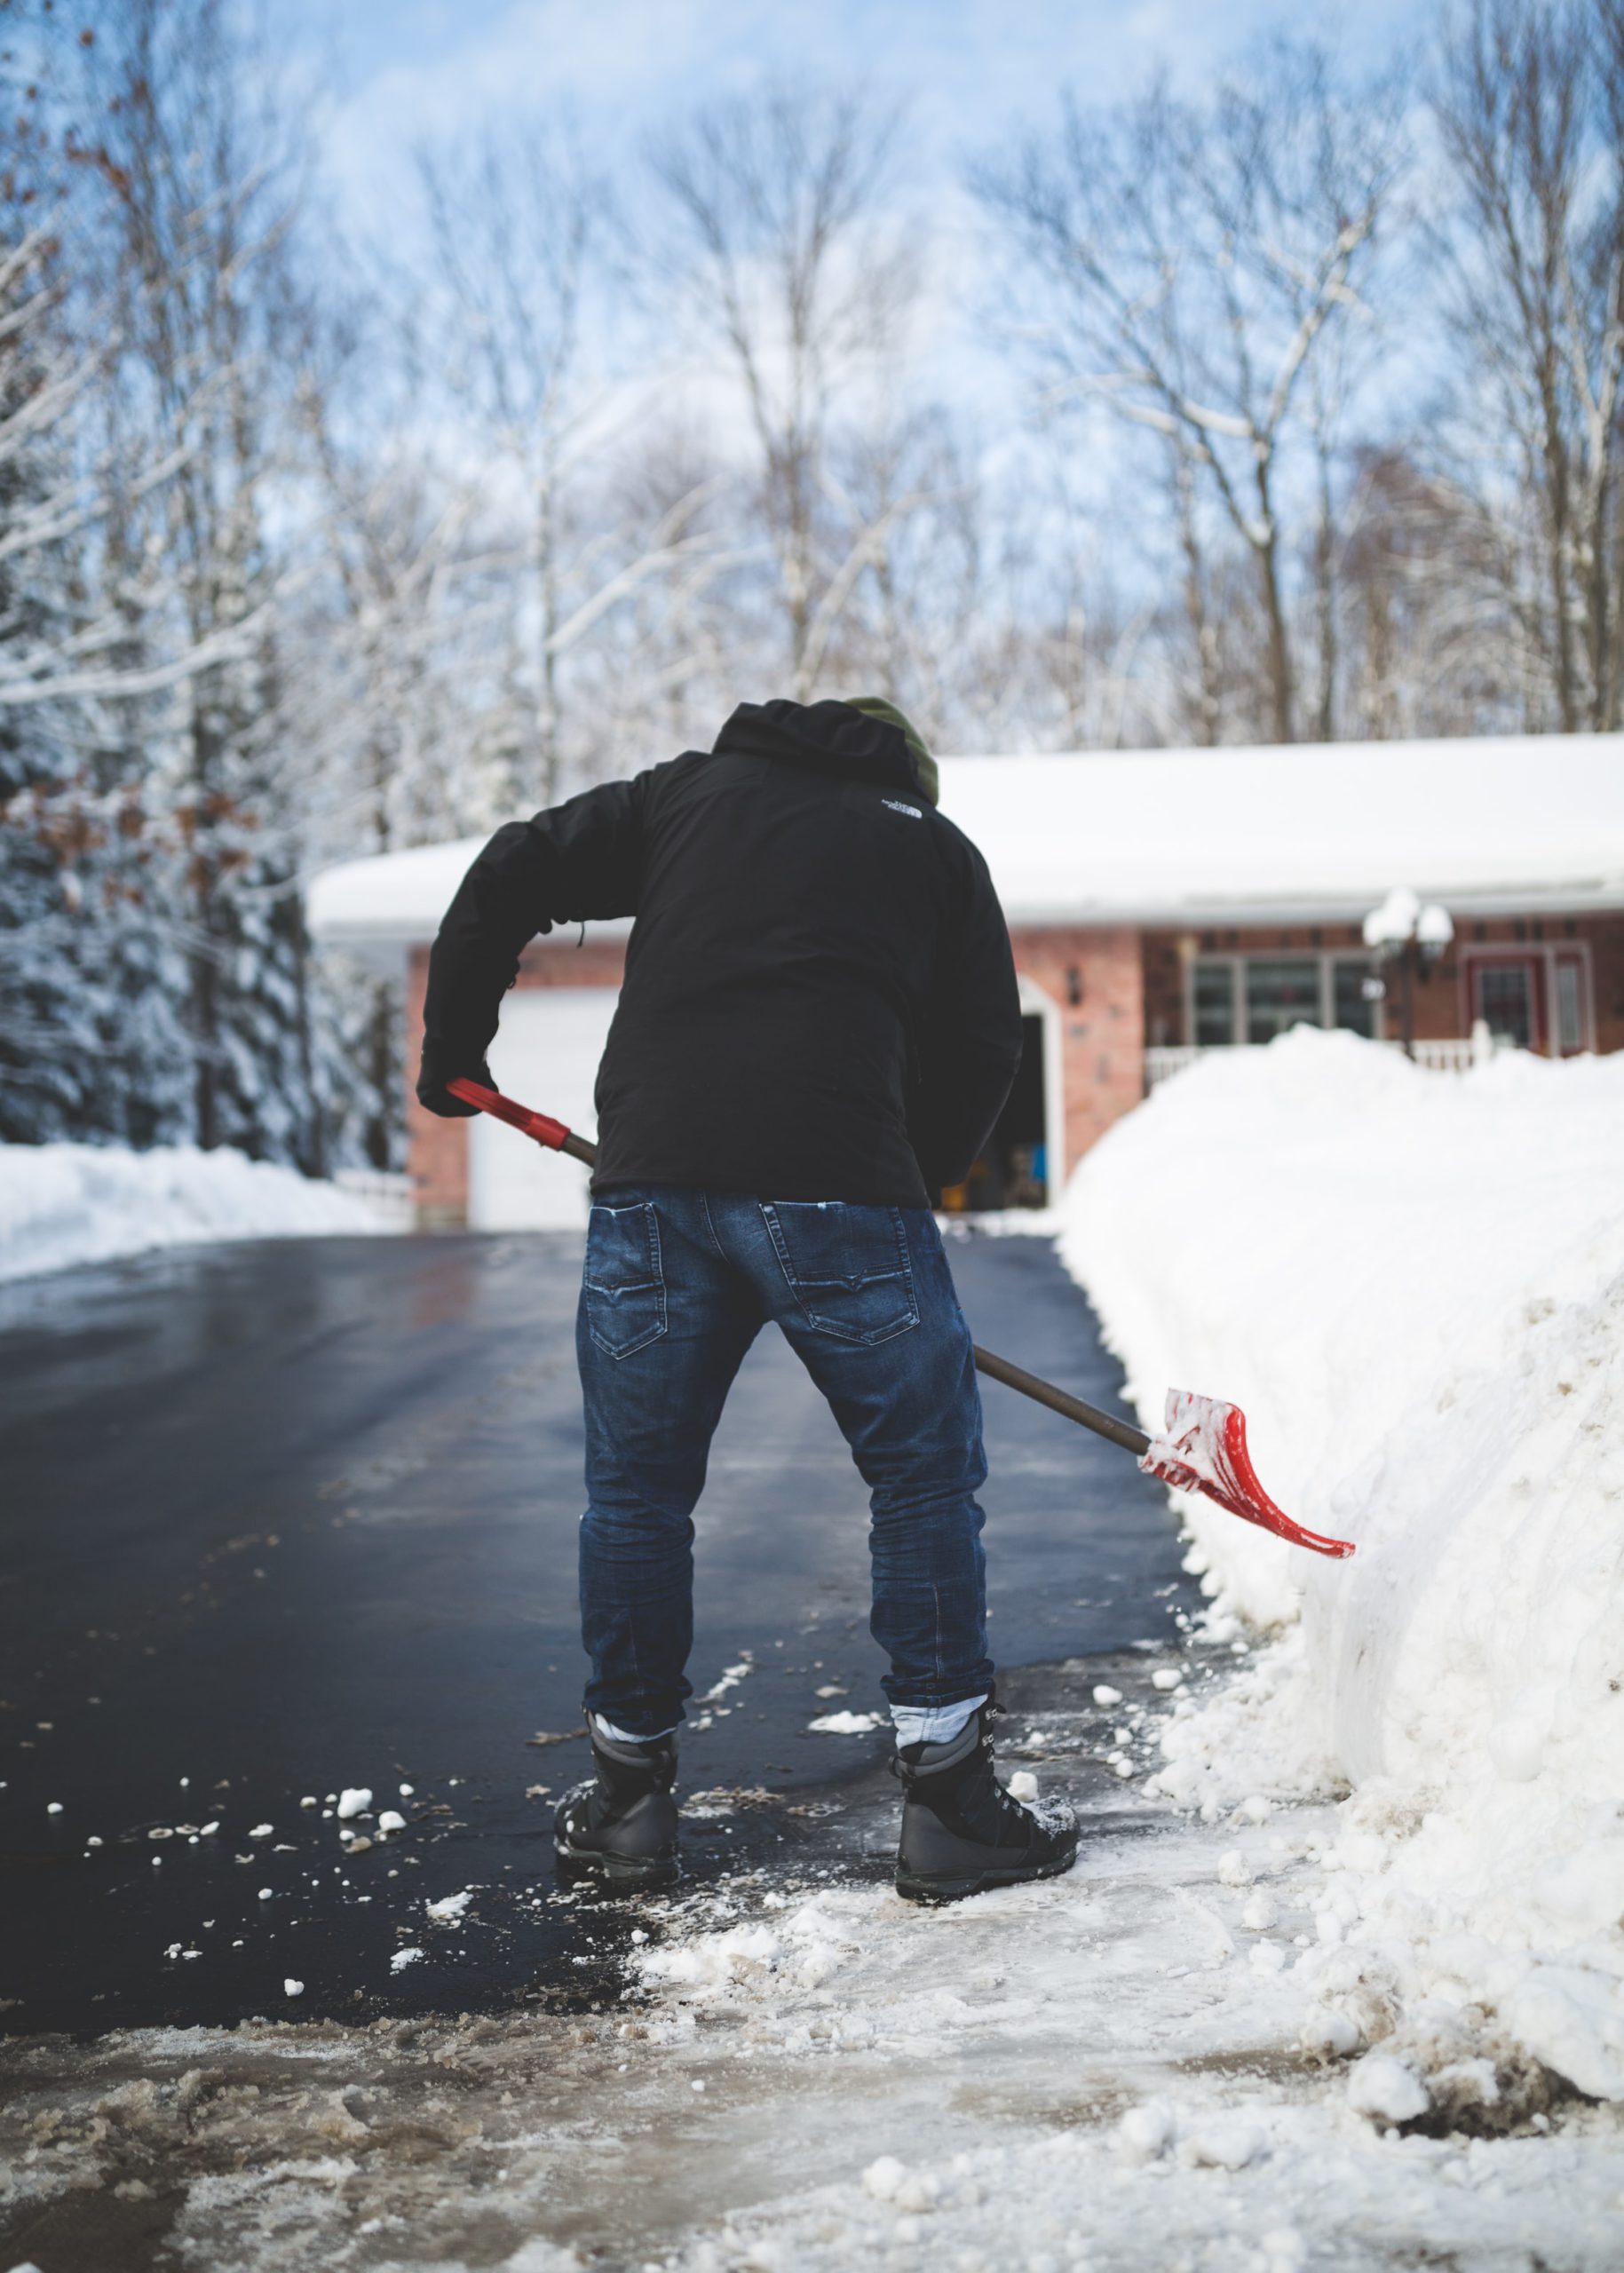 Shoveling Snow May Increases the Risk of Heart Disease